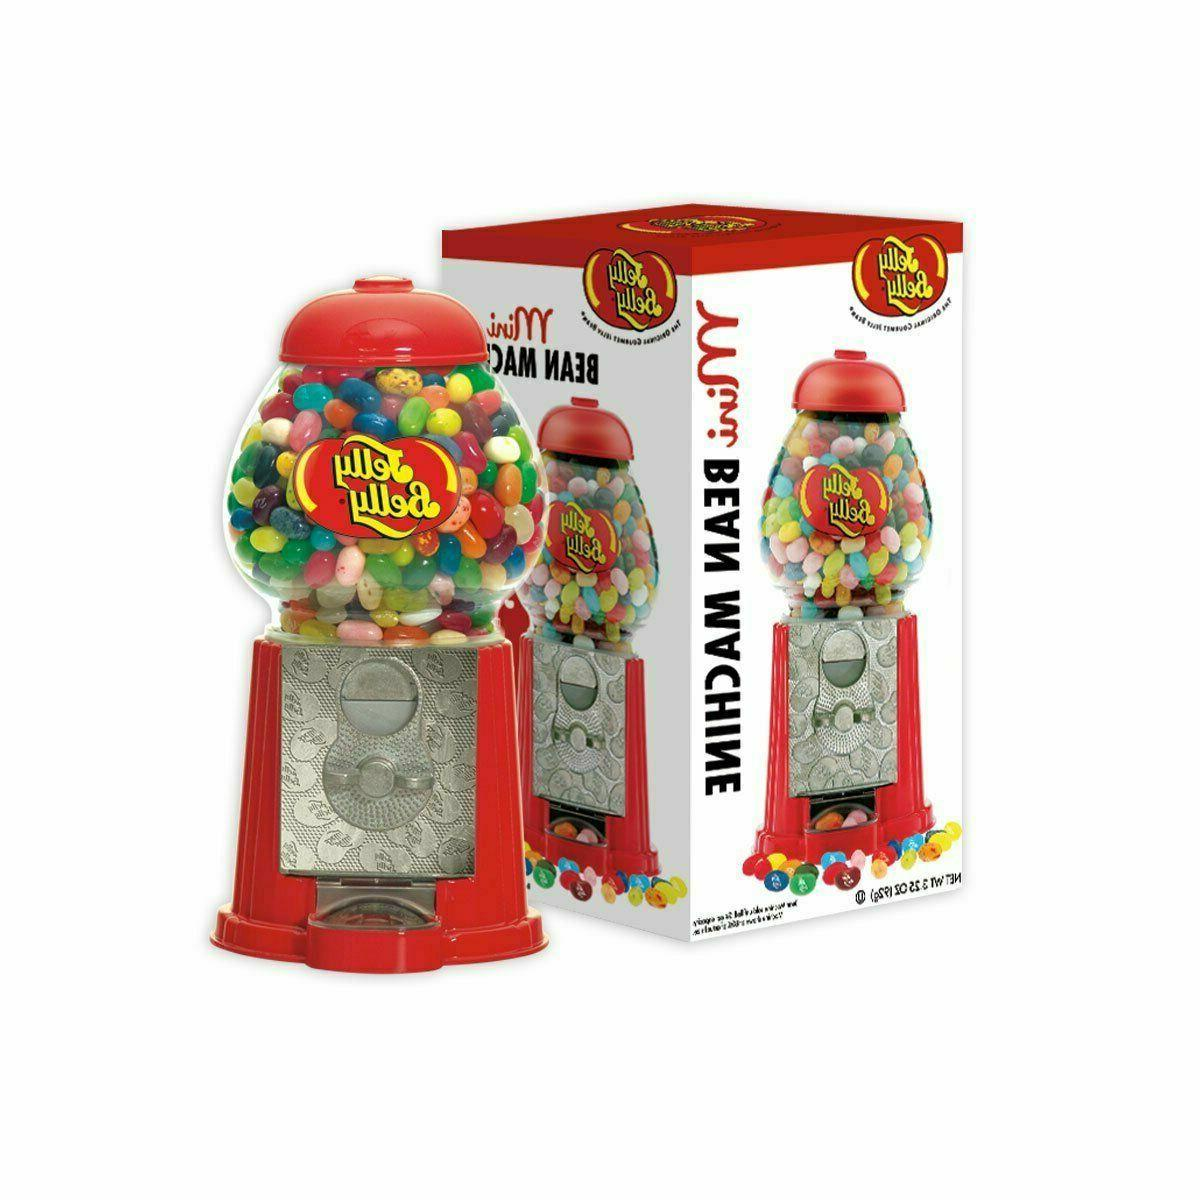 Jelly Belly Mini Bean Machine Jelly Bean Dispenser with Jell